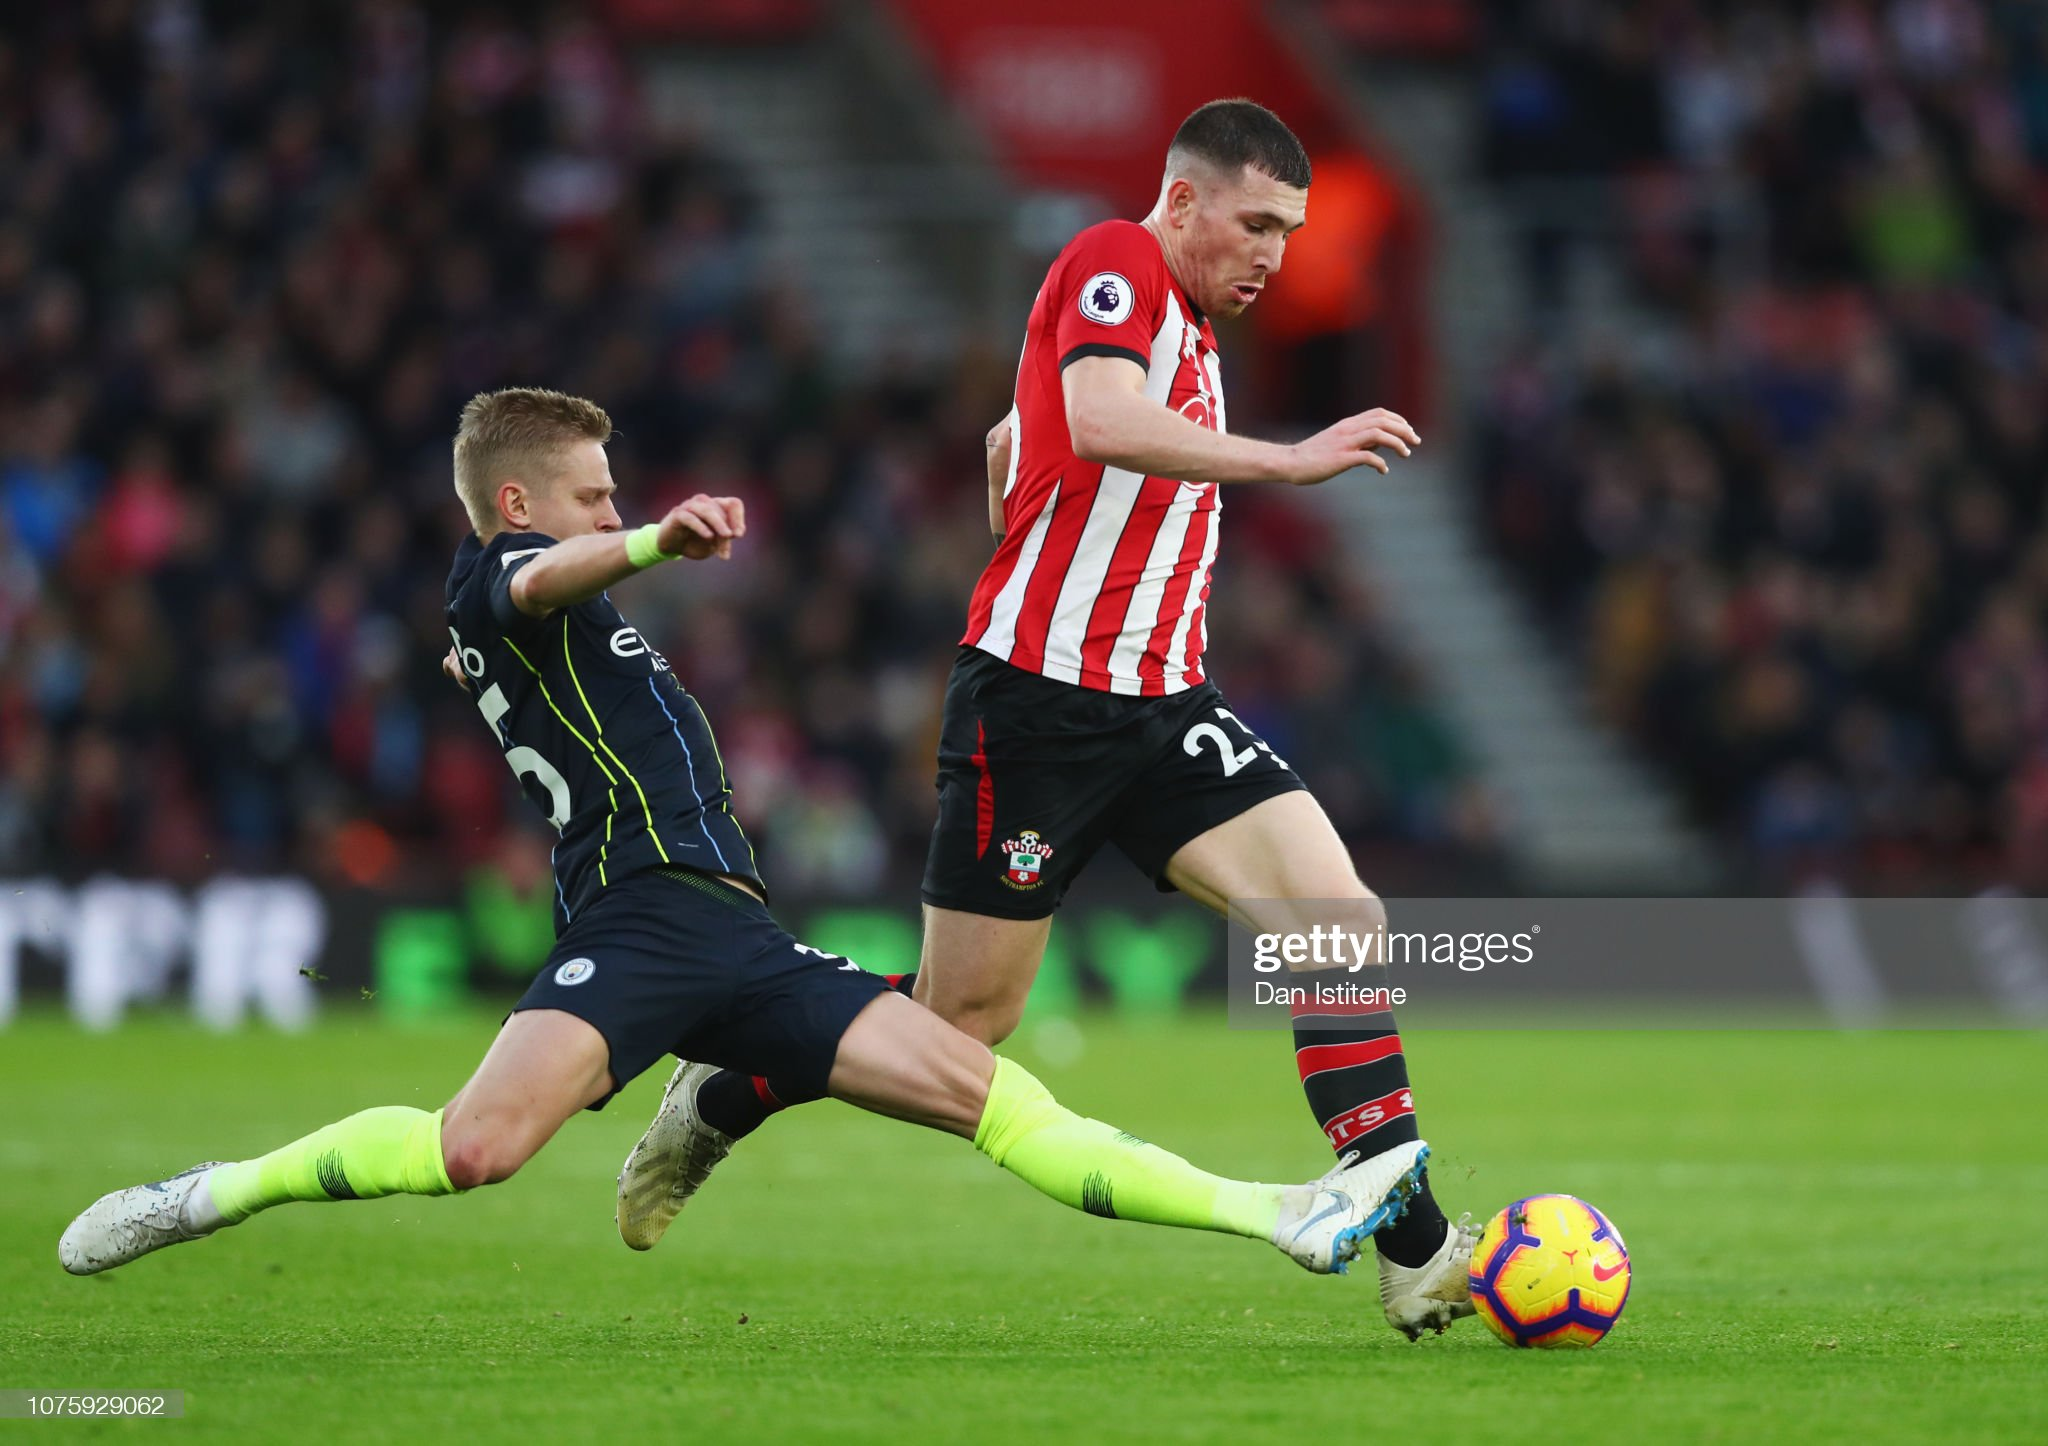 Manchester City v Southampton preview, prediction and odds